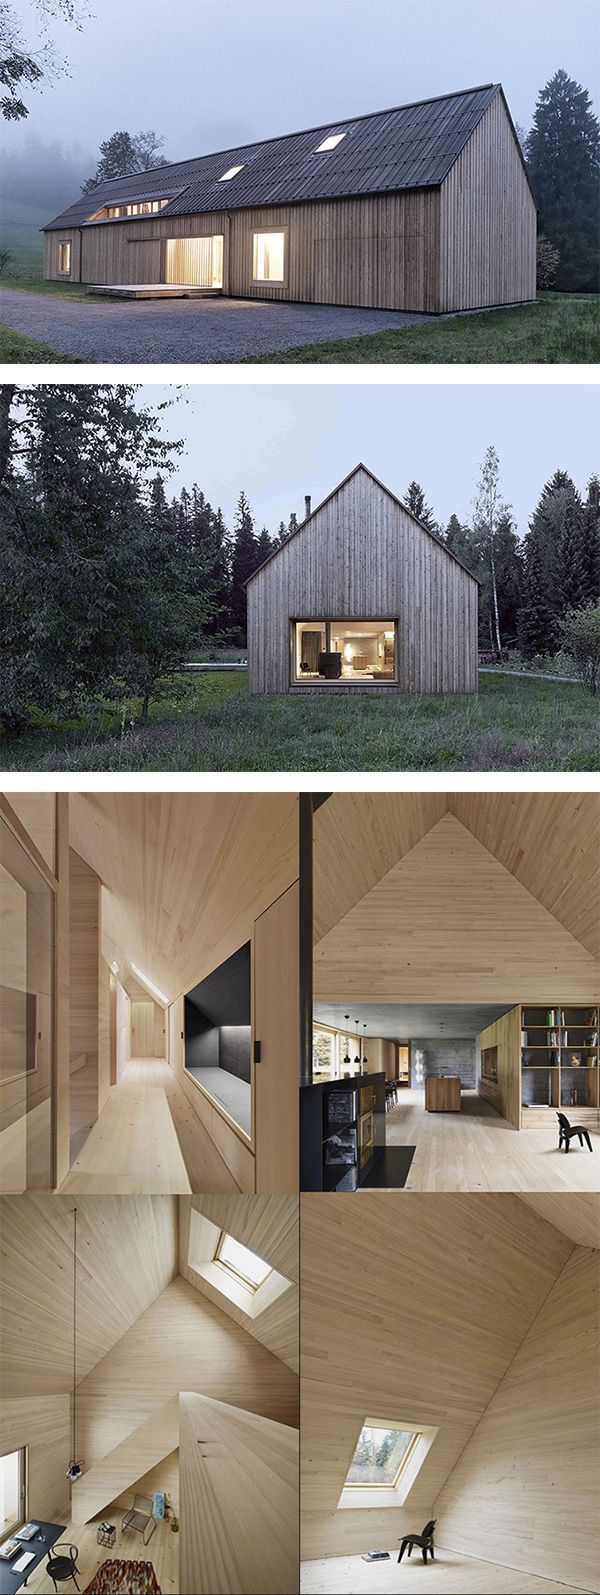 Haus am Moor - Austria This Bernardo Bader designed private home boasts beauty and elegance through simplicity. An exterior reminiscent of Scandinavian barns and a minimalist interior combine to create a unique and understated home.: